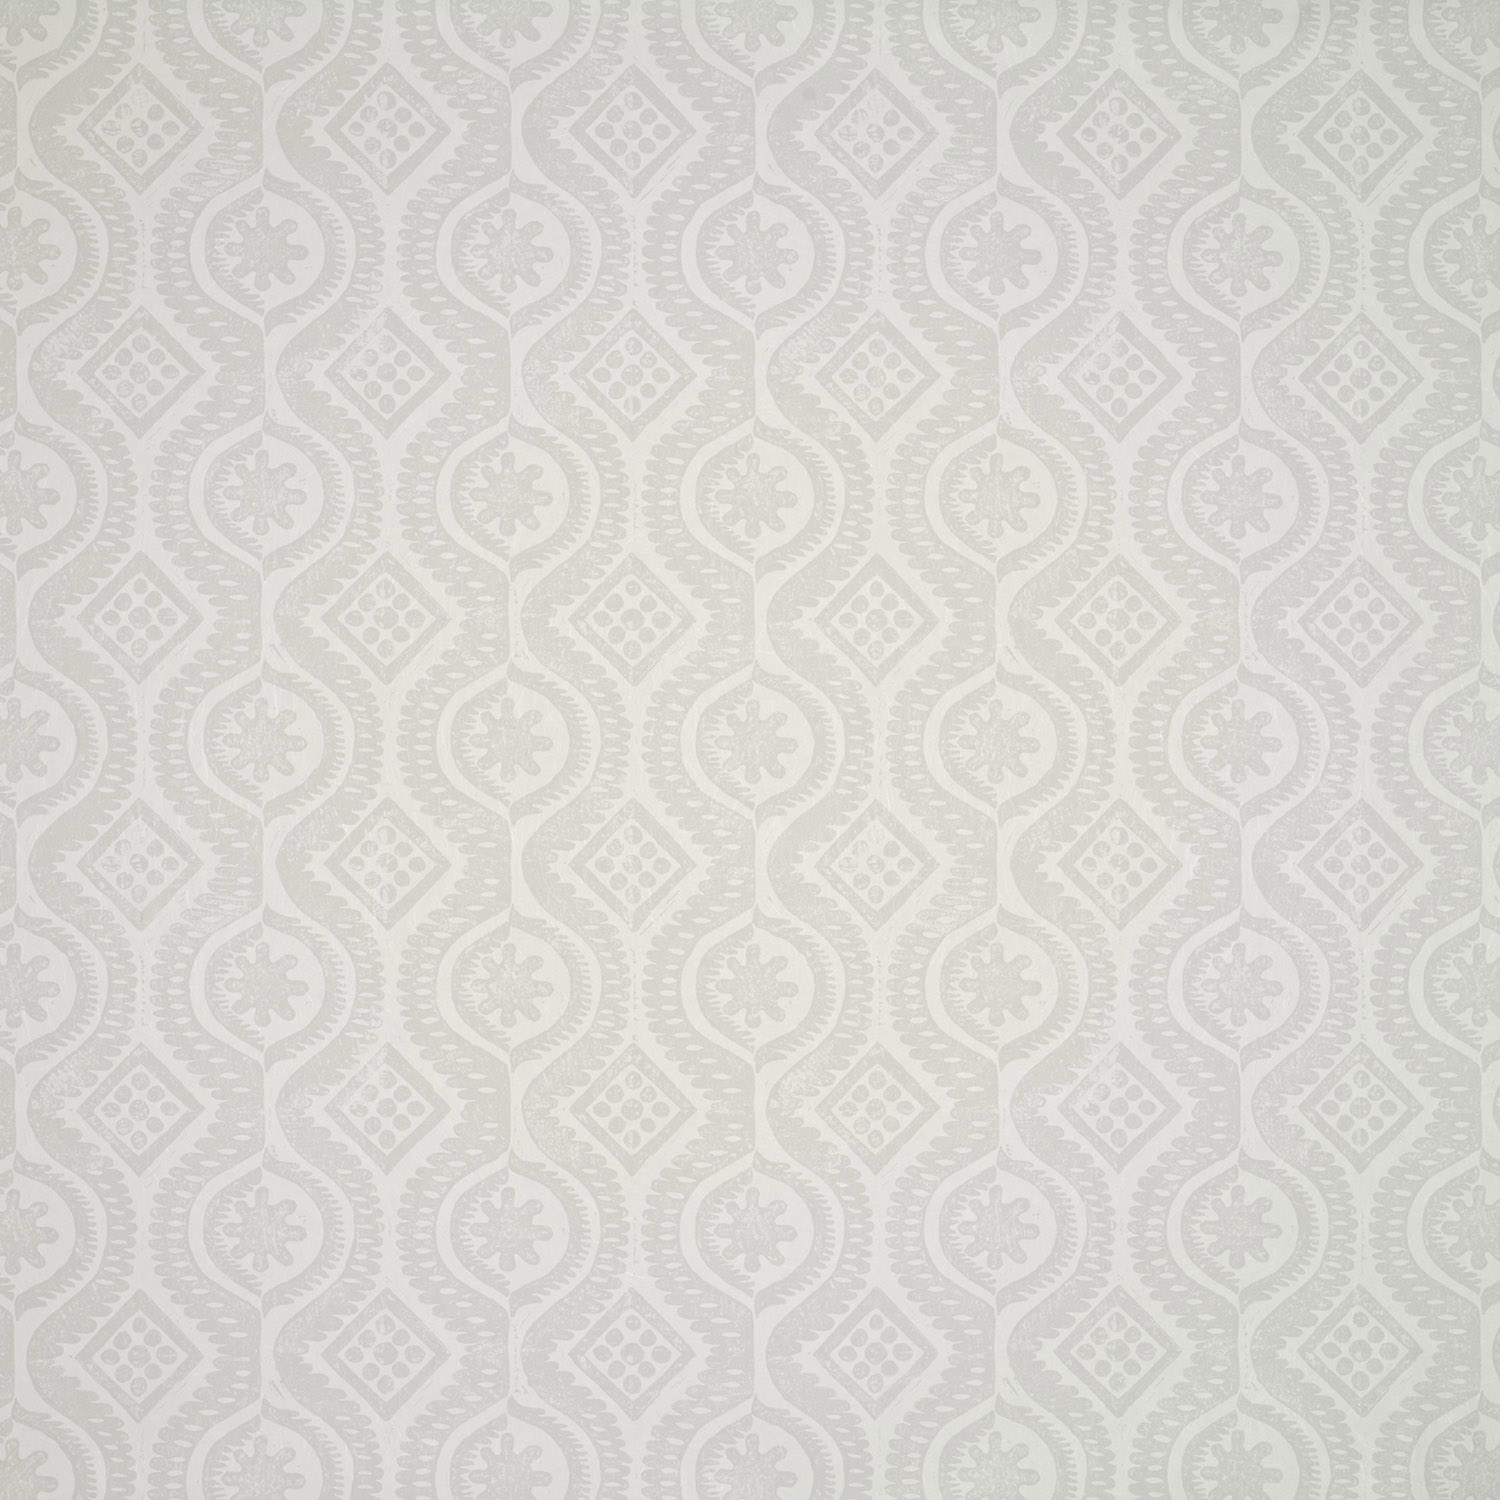 <p><strong>DAMASK</strong>grey 850-07<a href=/the-peggy-angus-collection/damask-grey-850-07>More →</a></p>